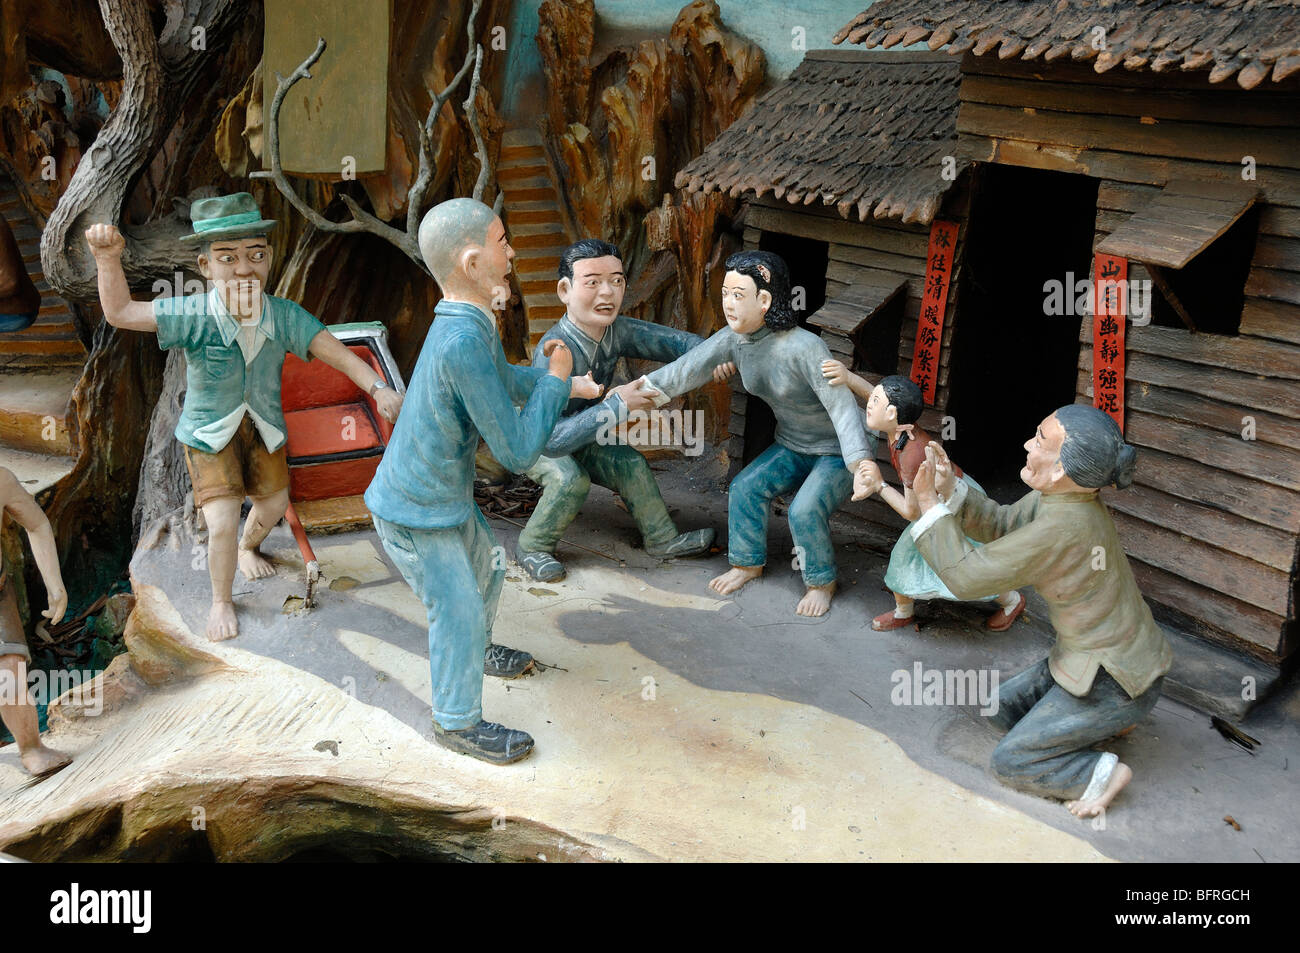 Chinese Village Debt Collector, 'Debts Lead to a Life of Ruin' Moralistic Tale, Tiger Balm Gardens Theme - Stock Image